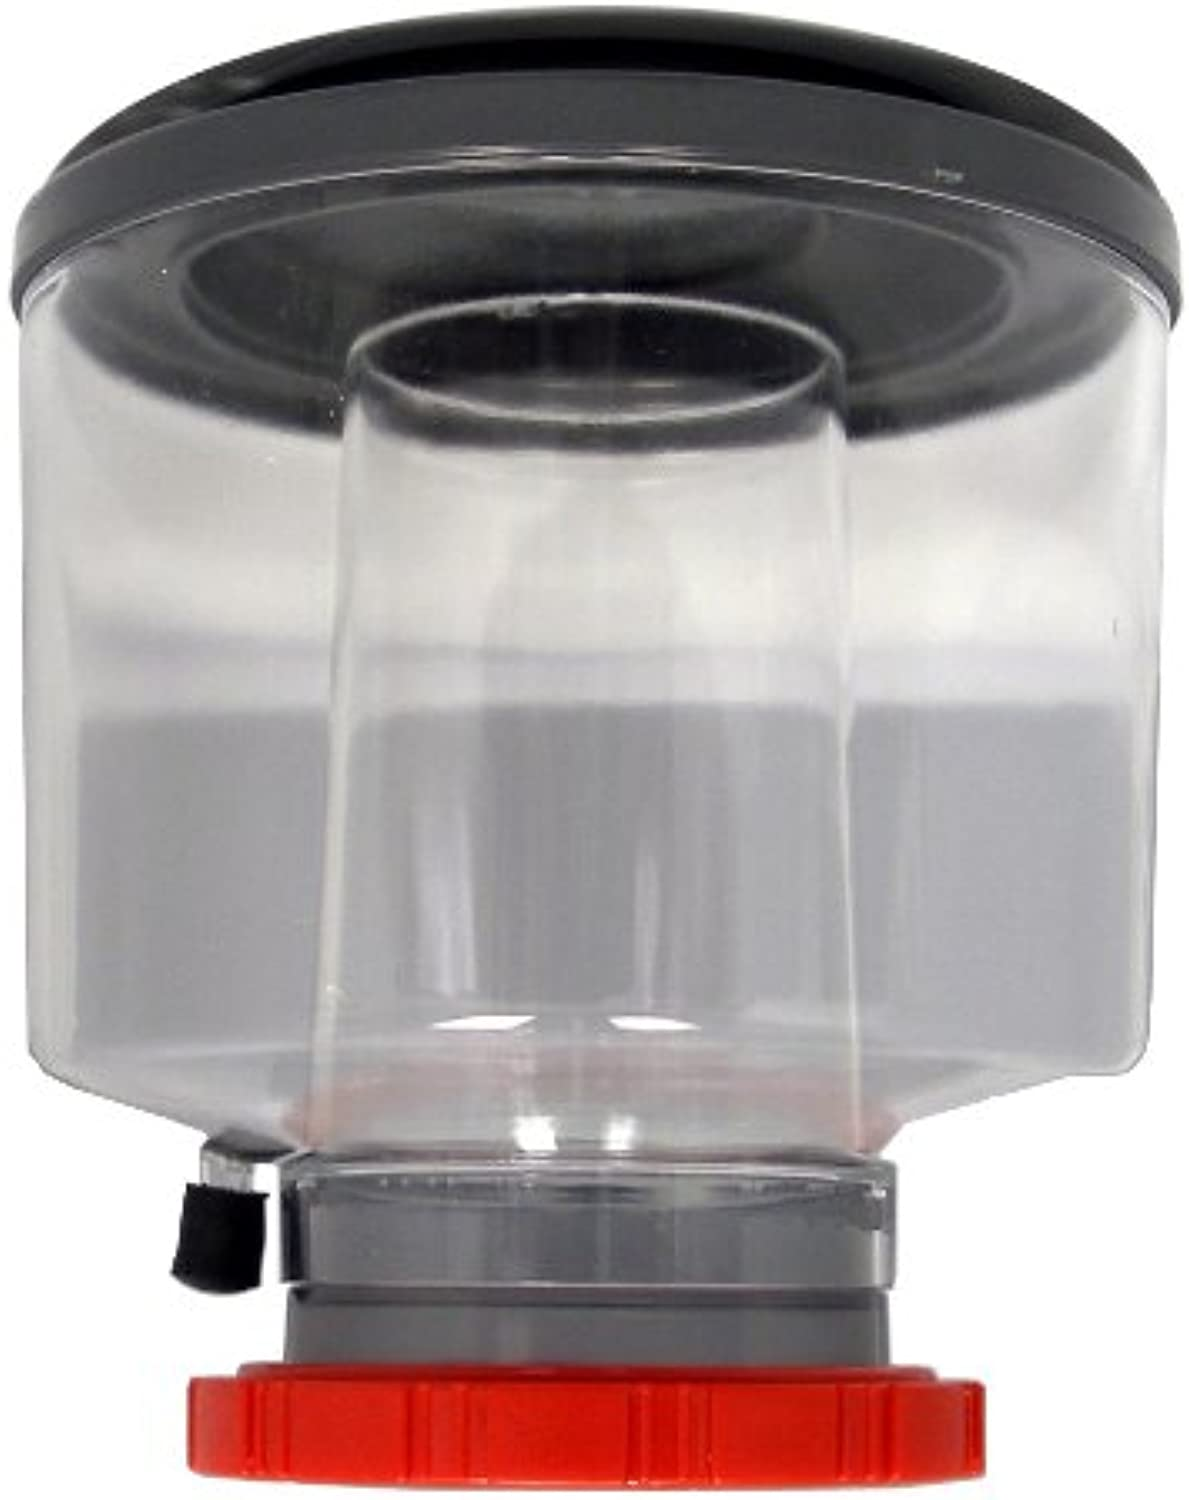 Coralife Replacement Cup for Super Skimmer 65 Gallon